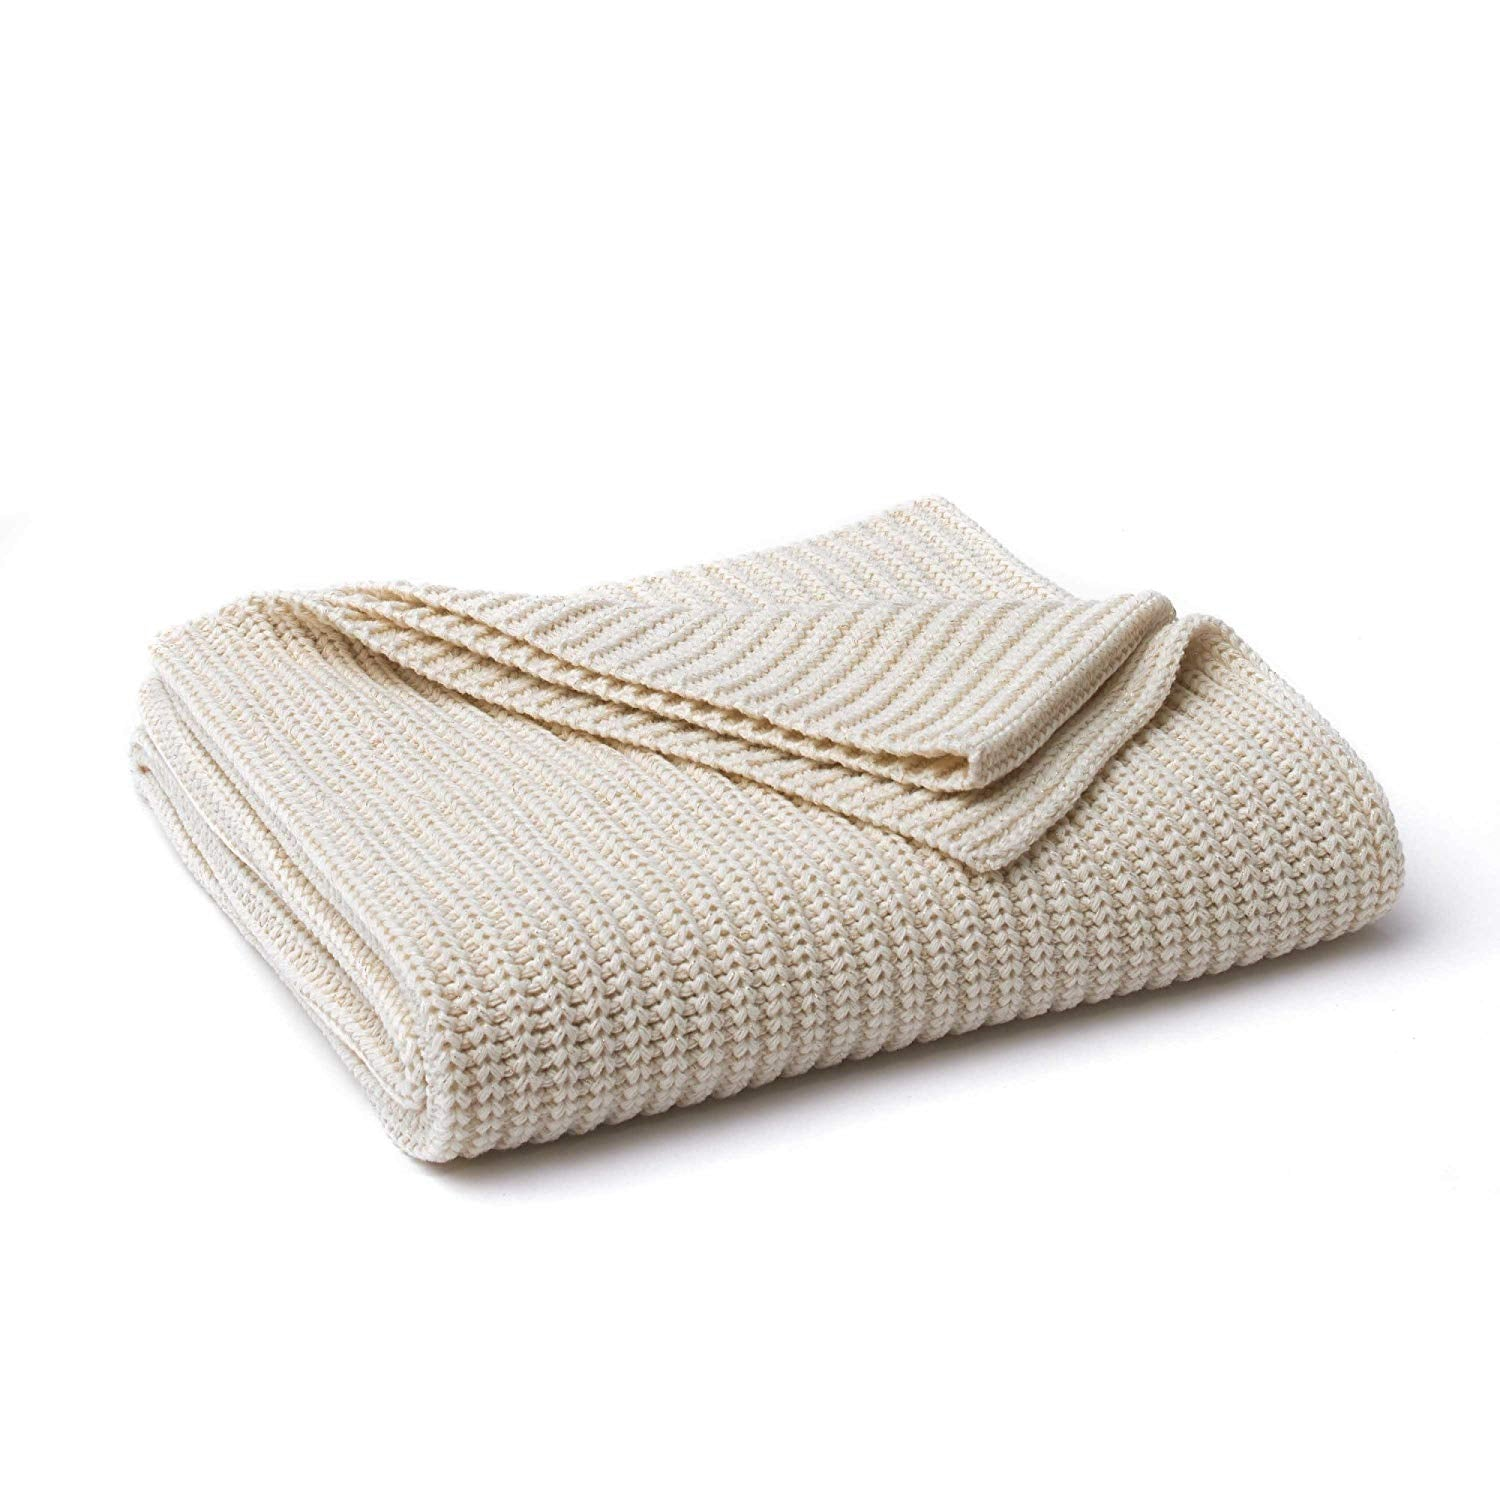 Vellux Chunky Knit Ivory/Gold Metallic Throw Blanket